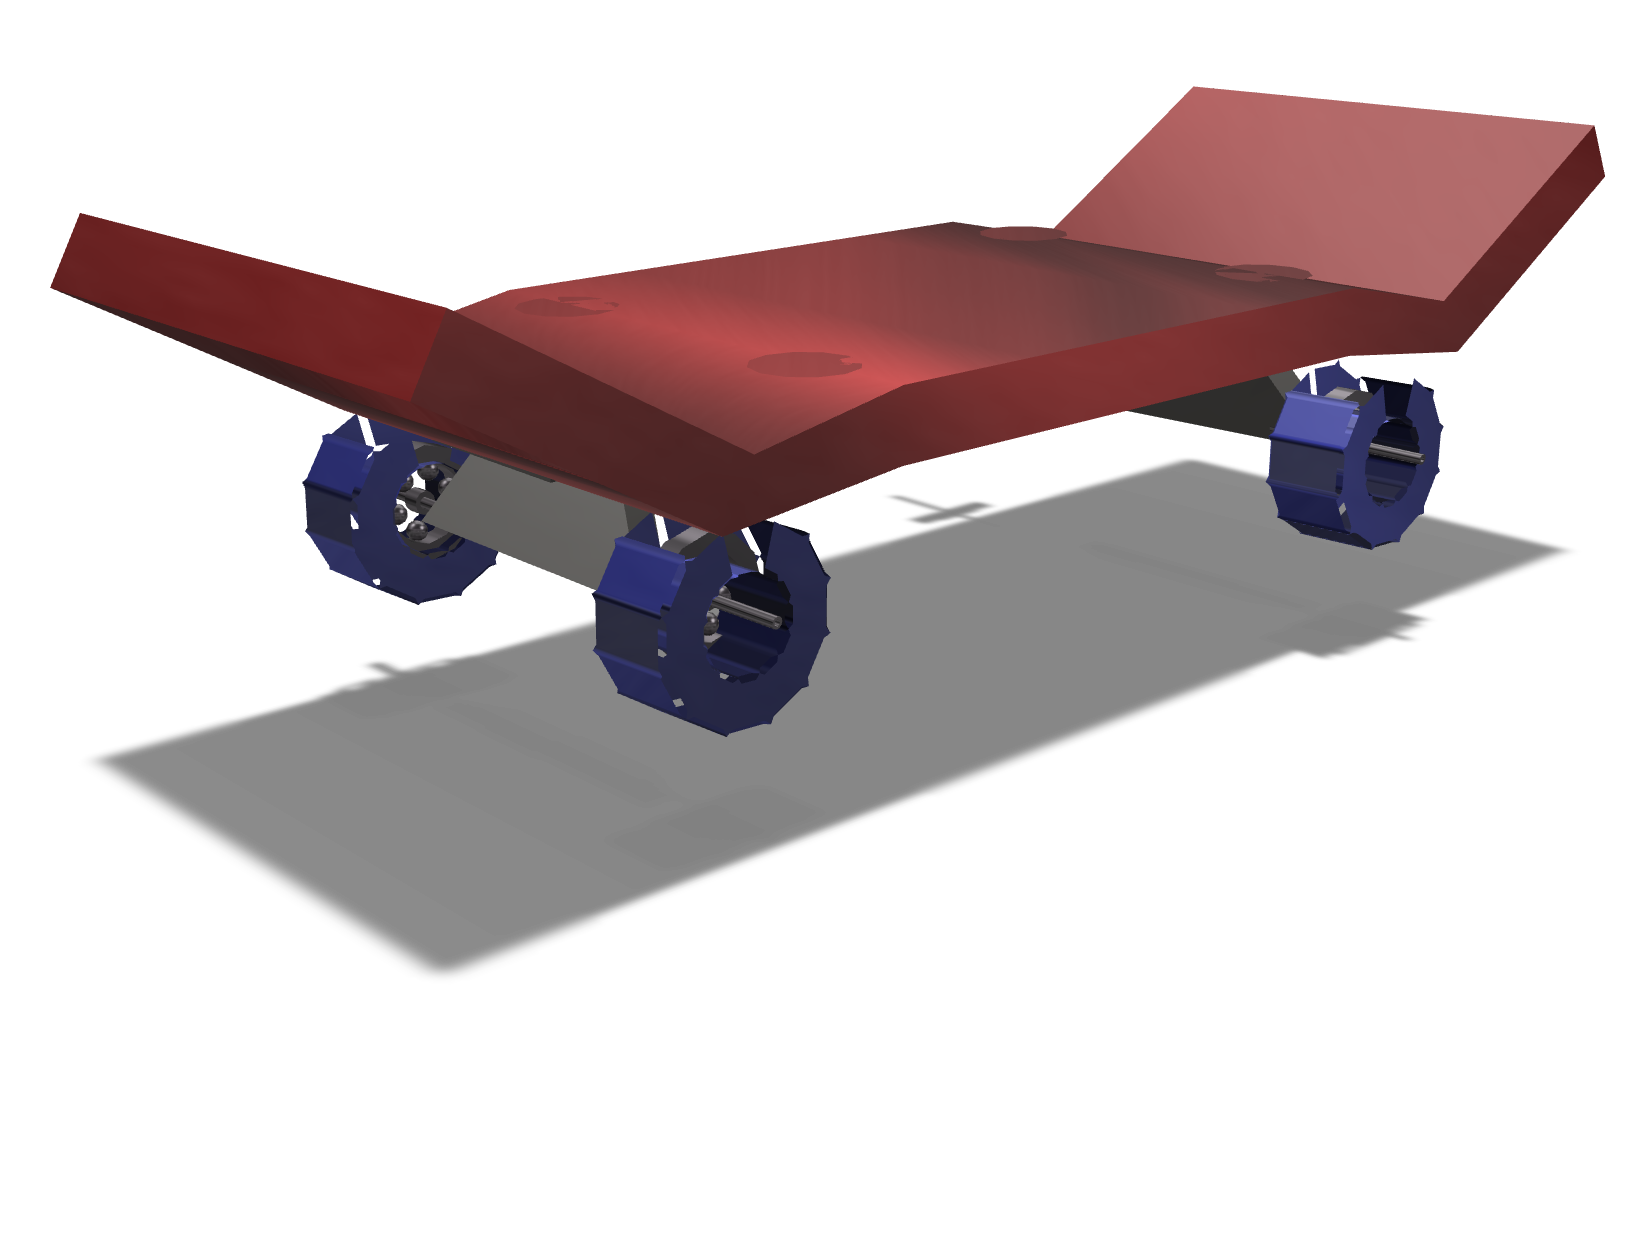 skateboard - 3D design by 730138 on May 1, 2018